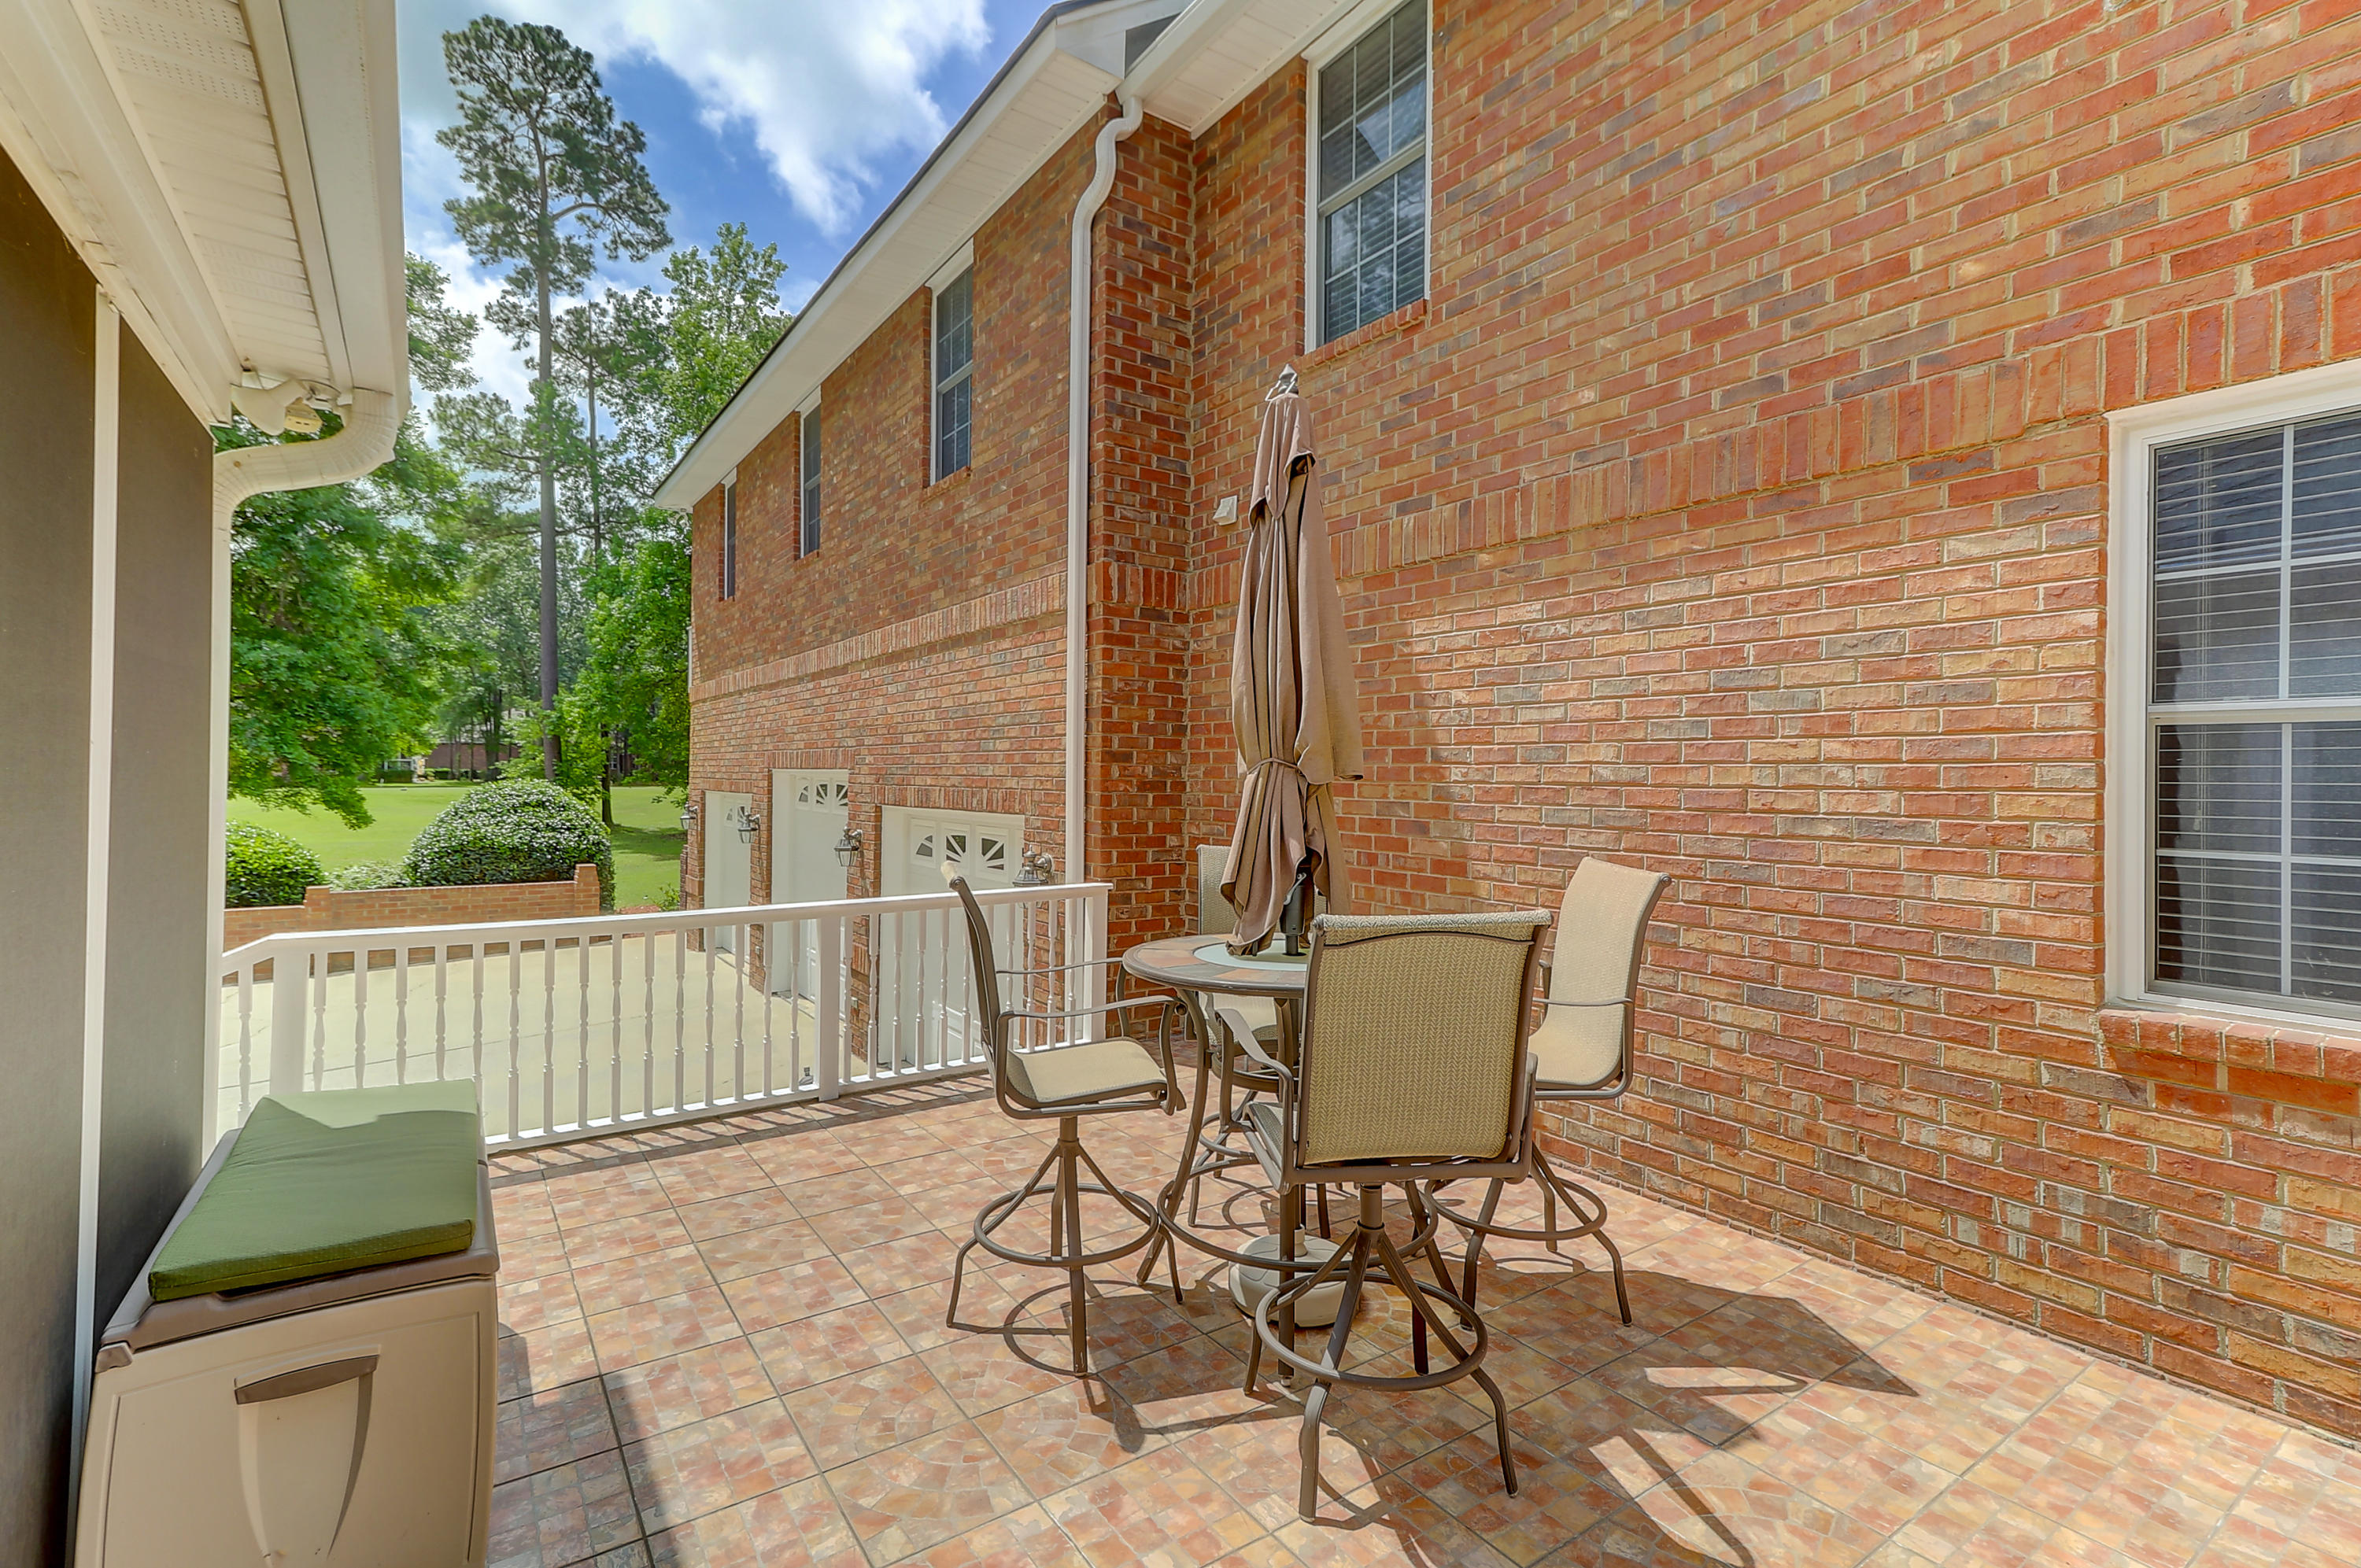 Coosaw Creek Country Club Homes For Sale - 8700 Fairway Woods, North Charleston, SC - 24